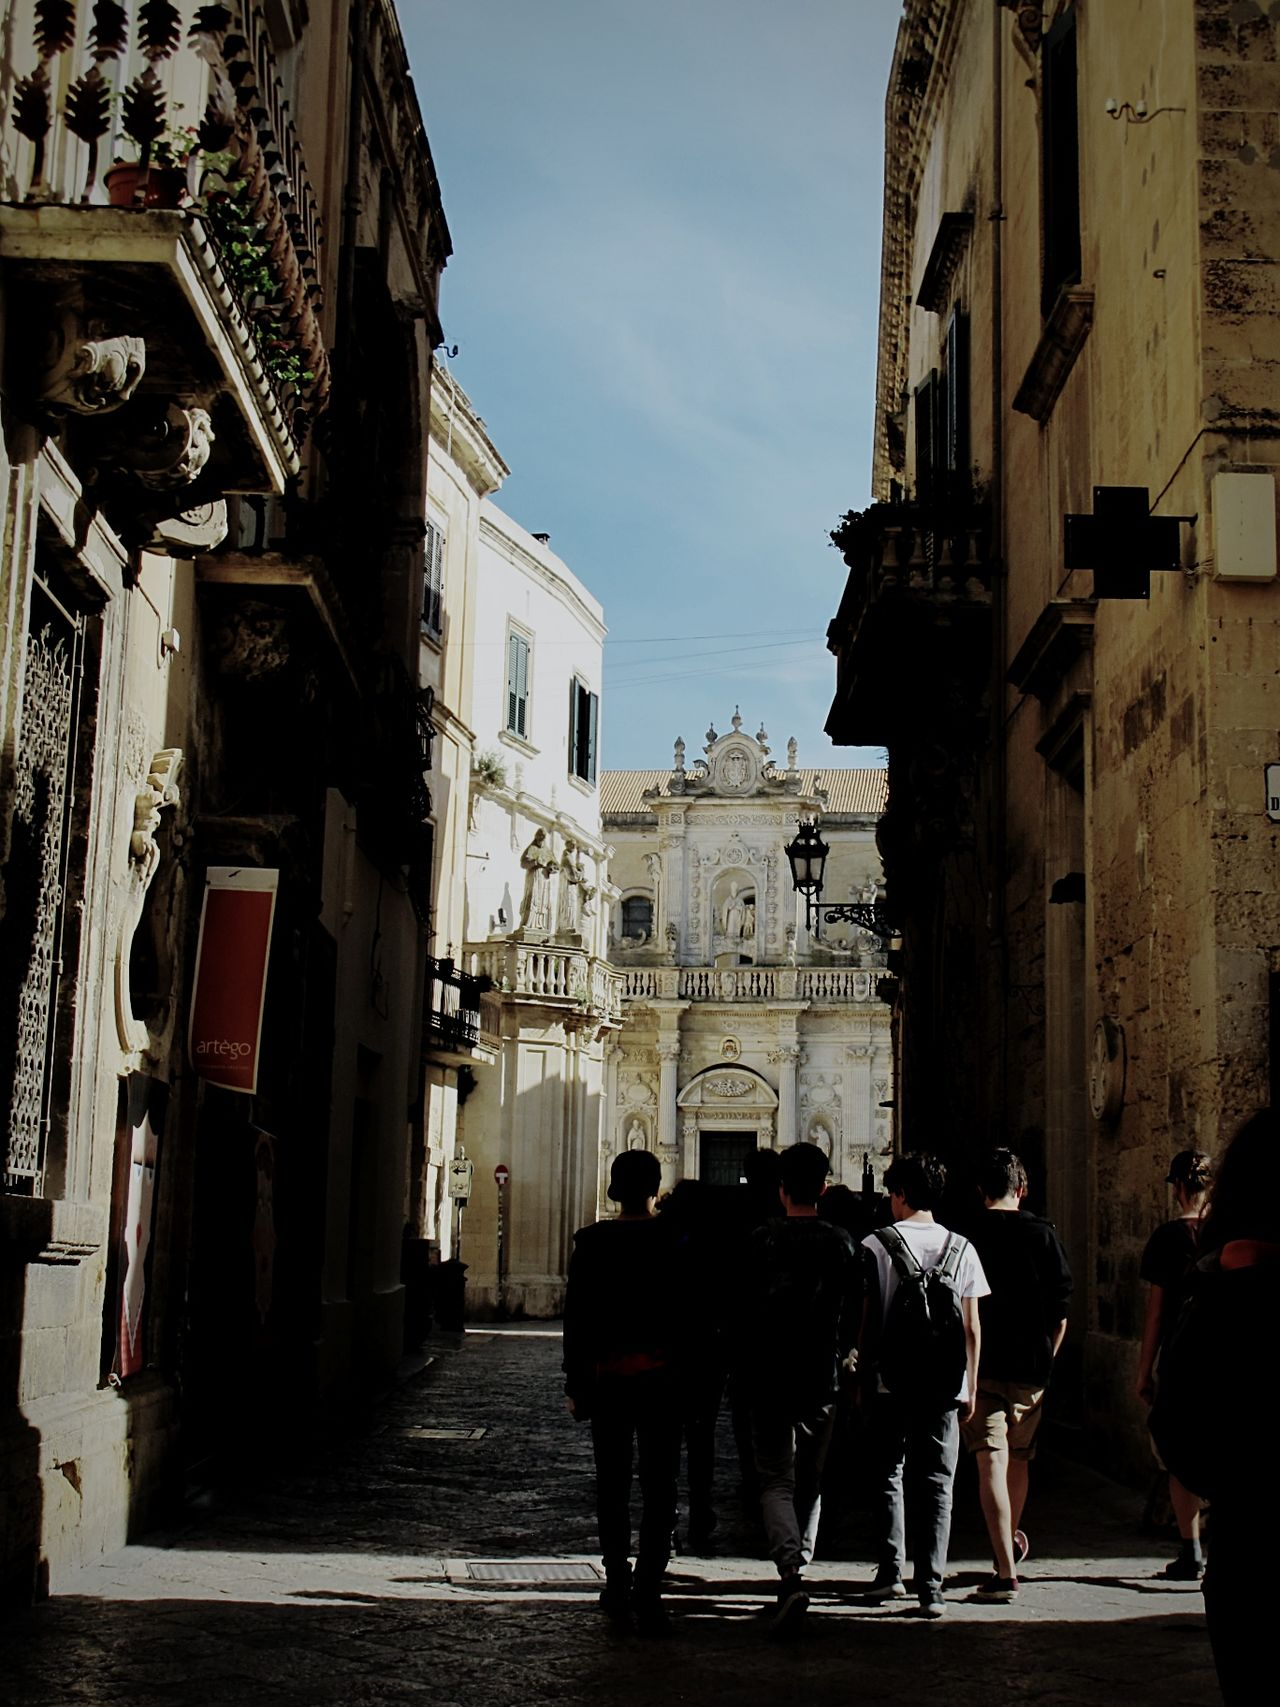 Taking Photos Puglia2016 Relaxing Puglia South Italy Puglia Italy Holidays Enjoying Life Hello World Light Light And Shadow Lights Light In The Darkness Light And Shadows Light And Dark City City Lights Citylights City Landscape Animals In The Wild